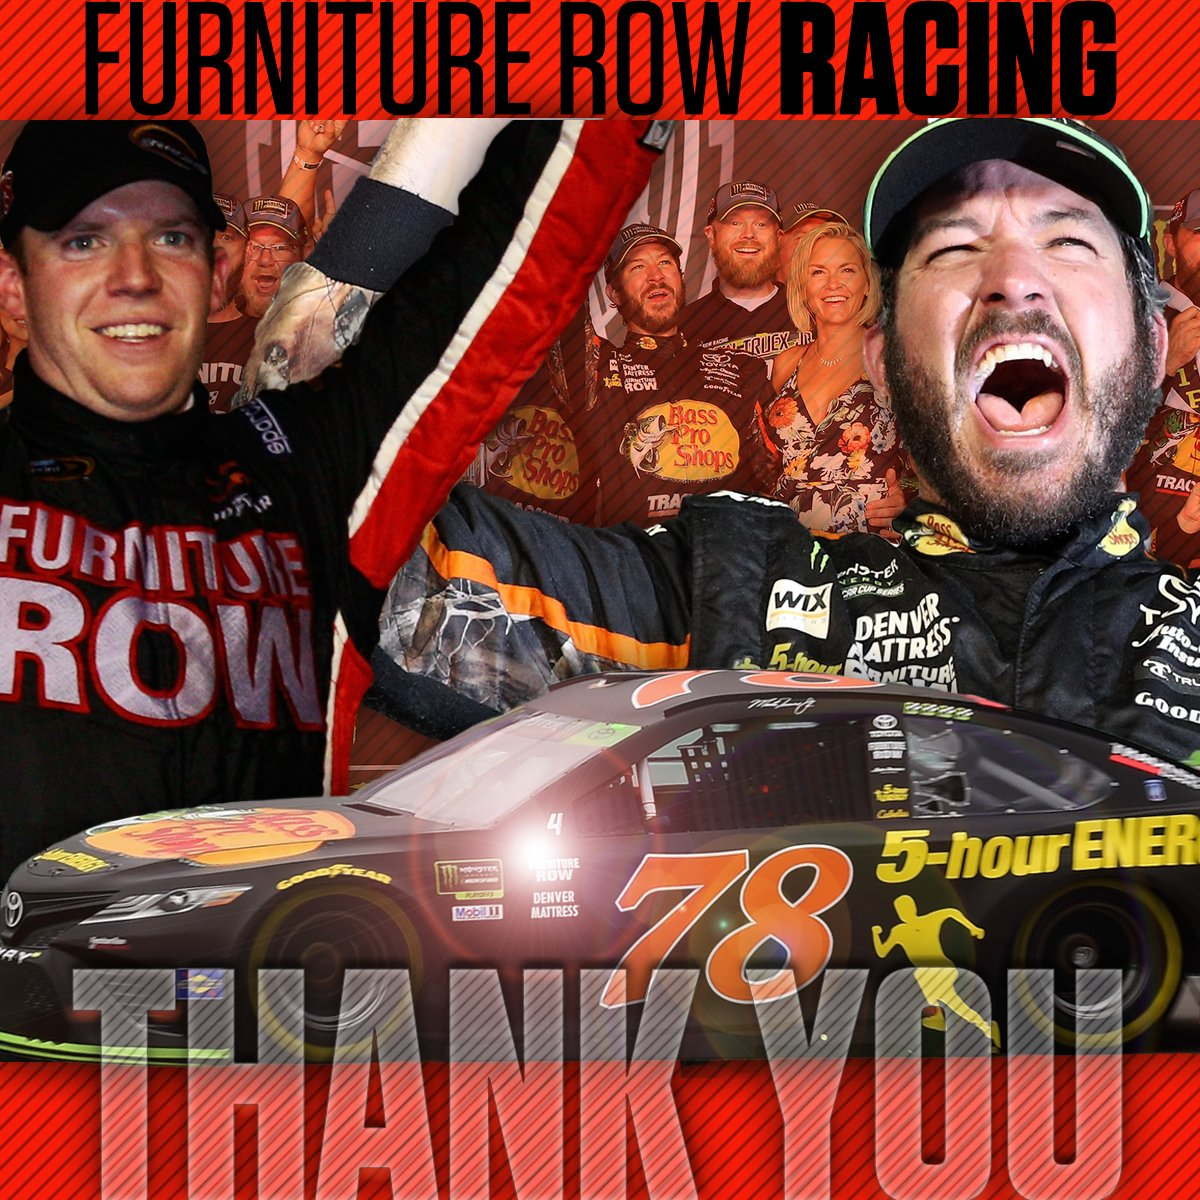 Nascar On Nbc On Twitter From Furniture Row S First Win At